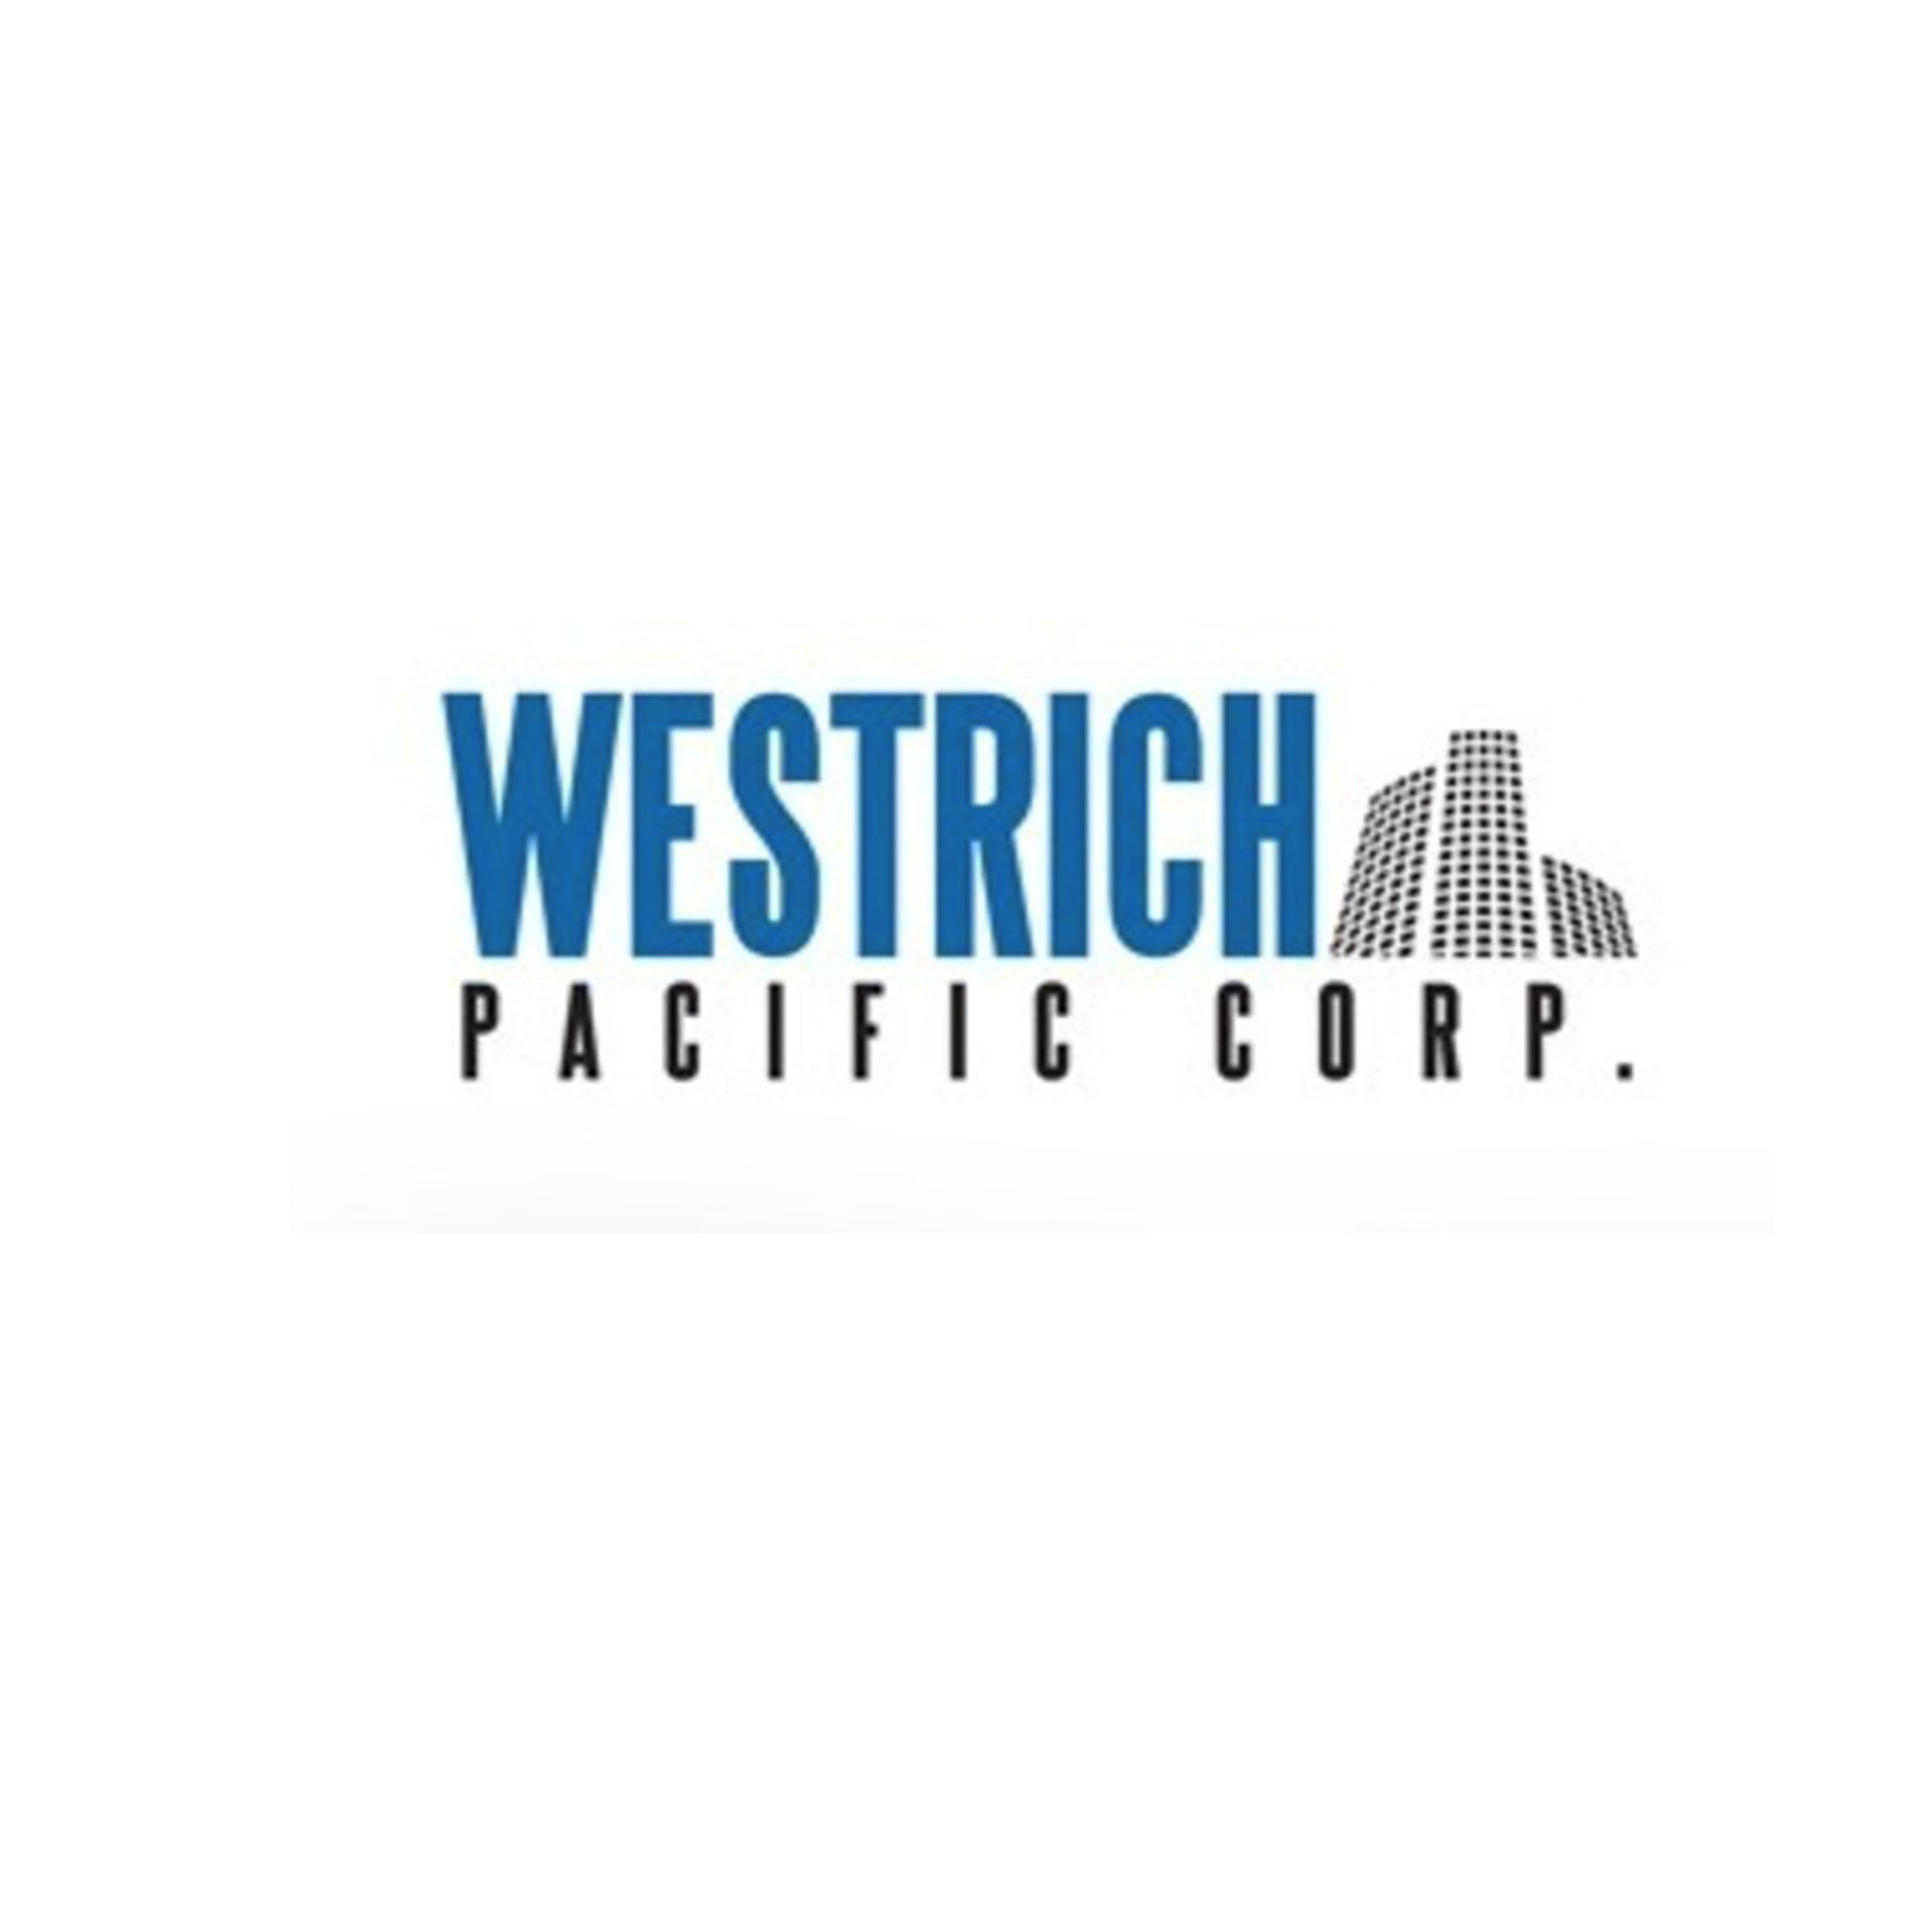 Westrich Pacific